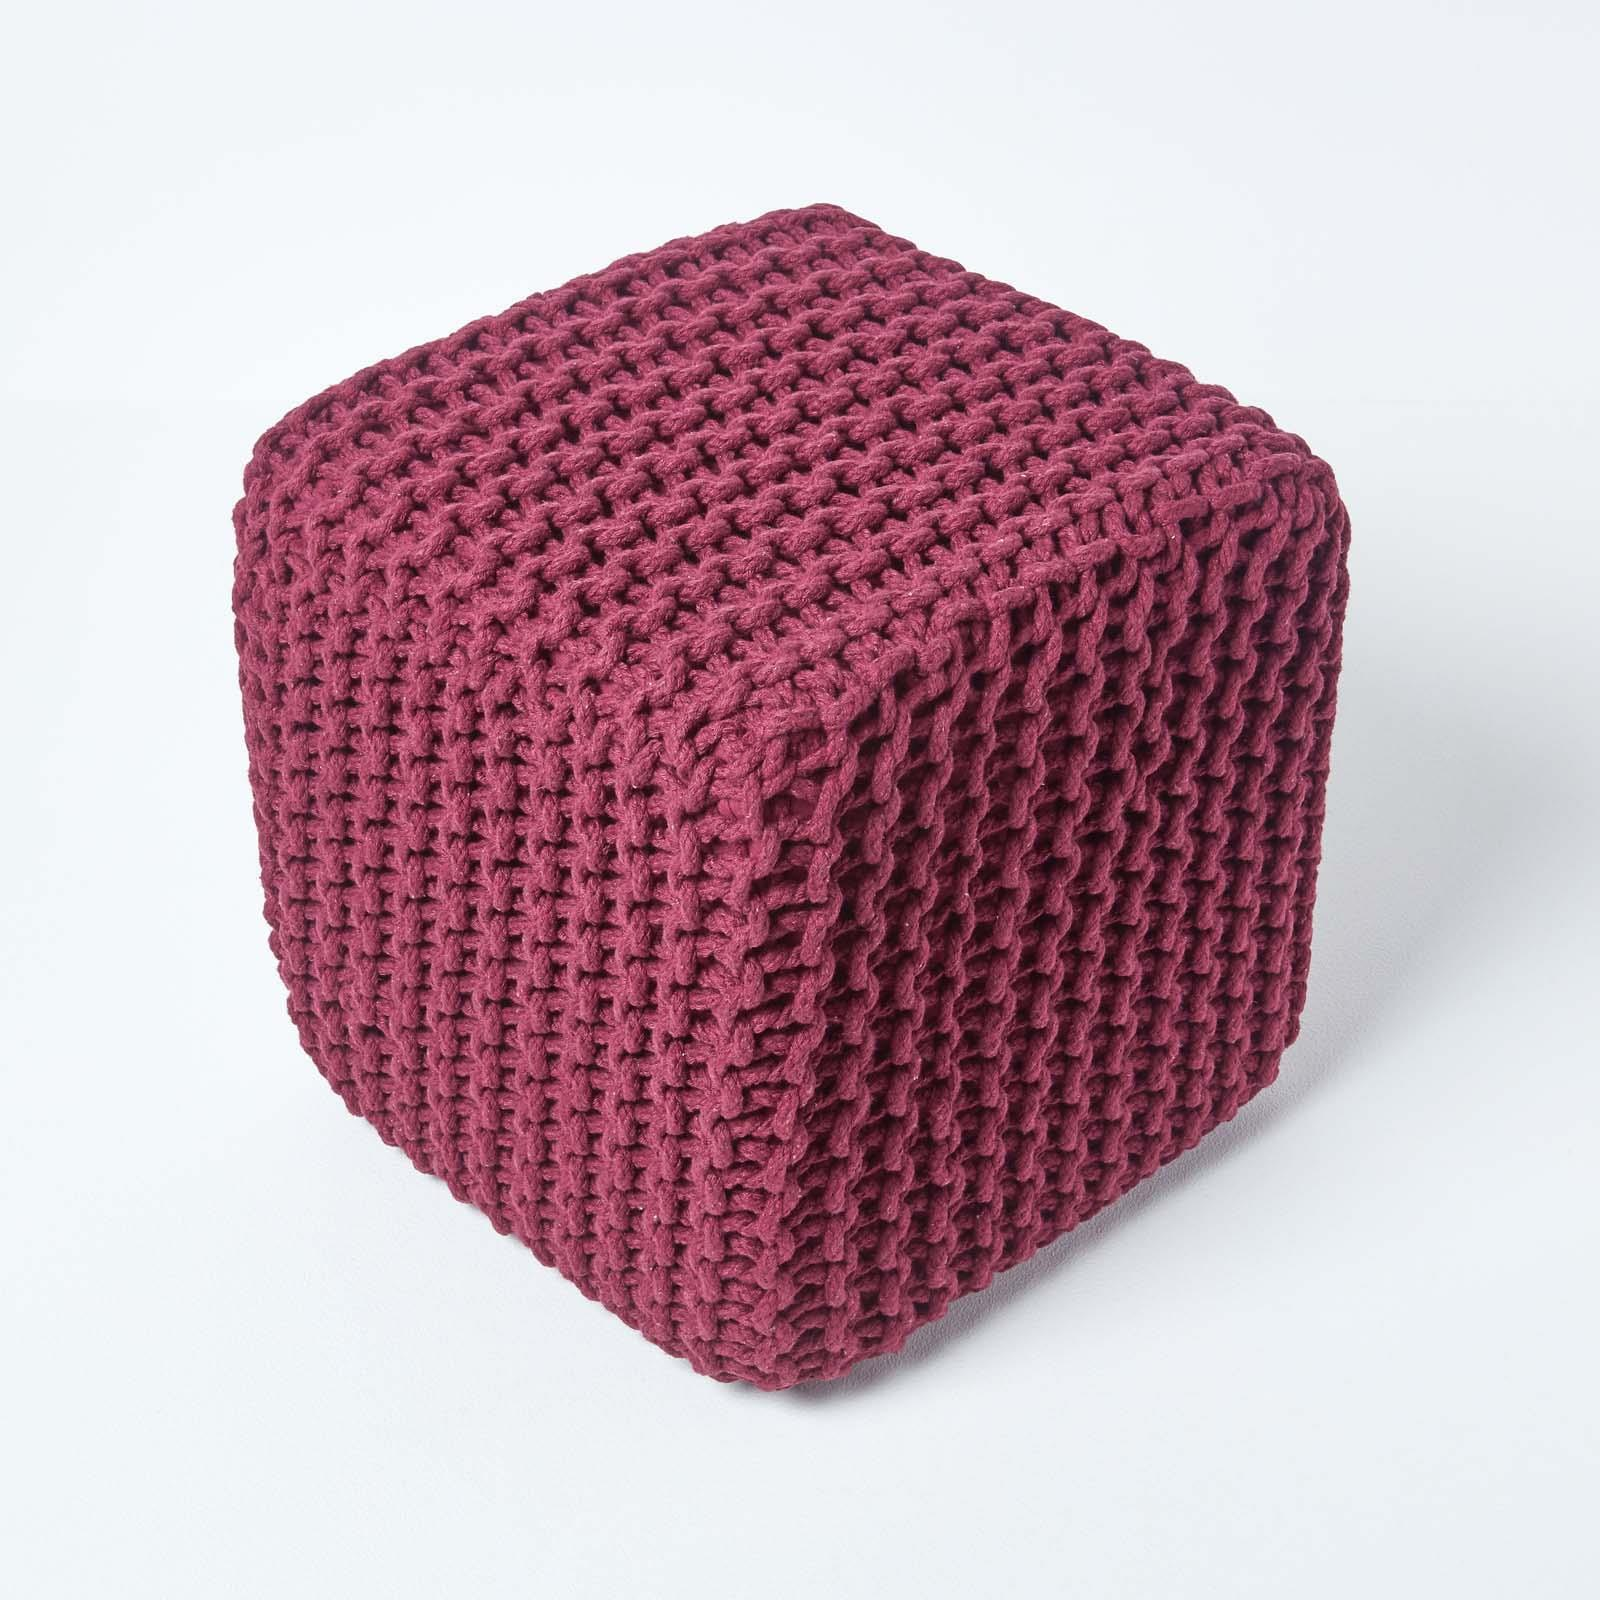 Hand-Knitted-100-Cotton-Pouffes-Round-Sphere-Or-Cube-Square-Chunky-Footstools thumbnail 159